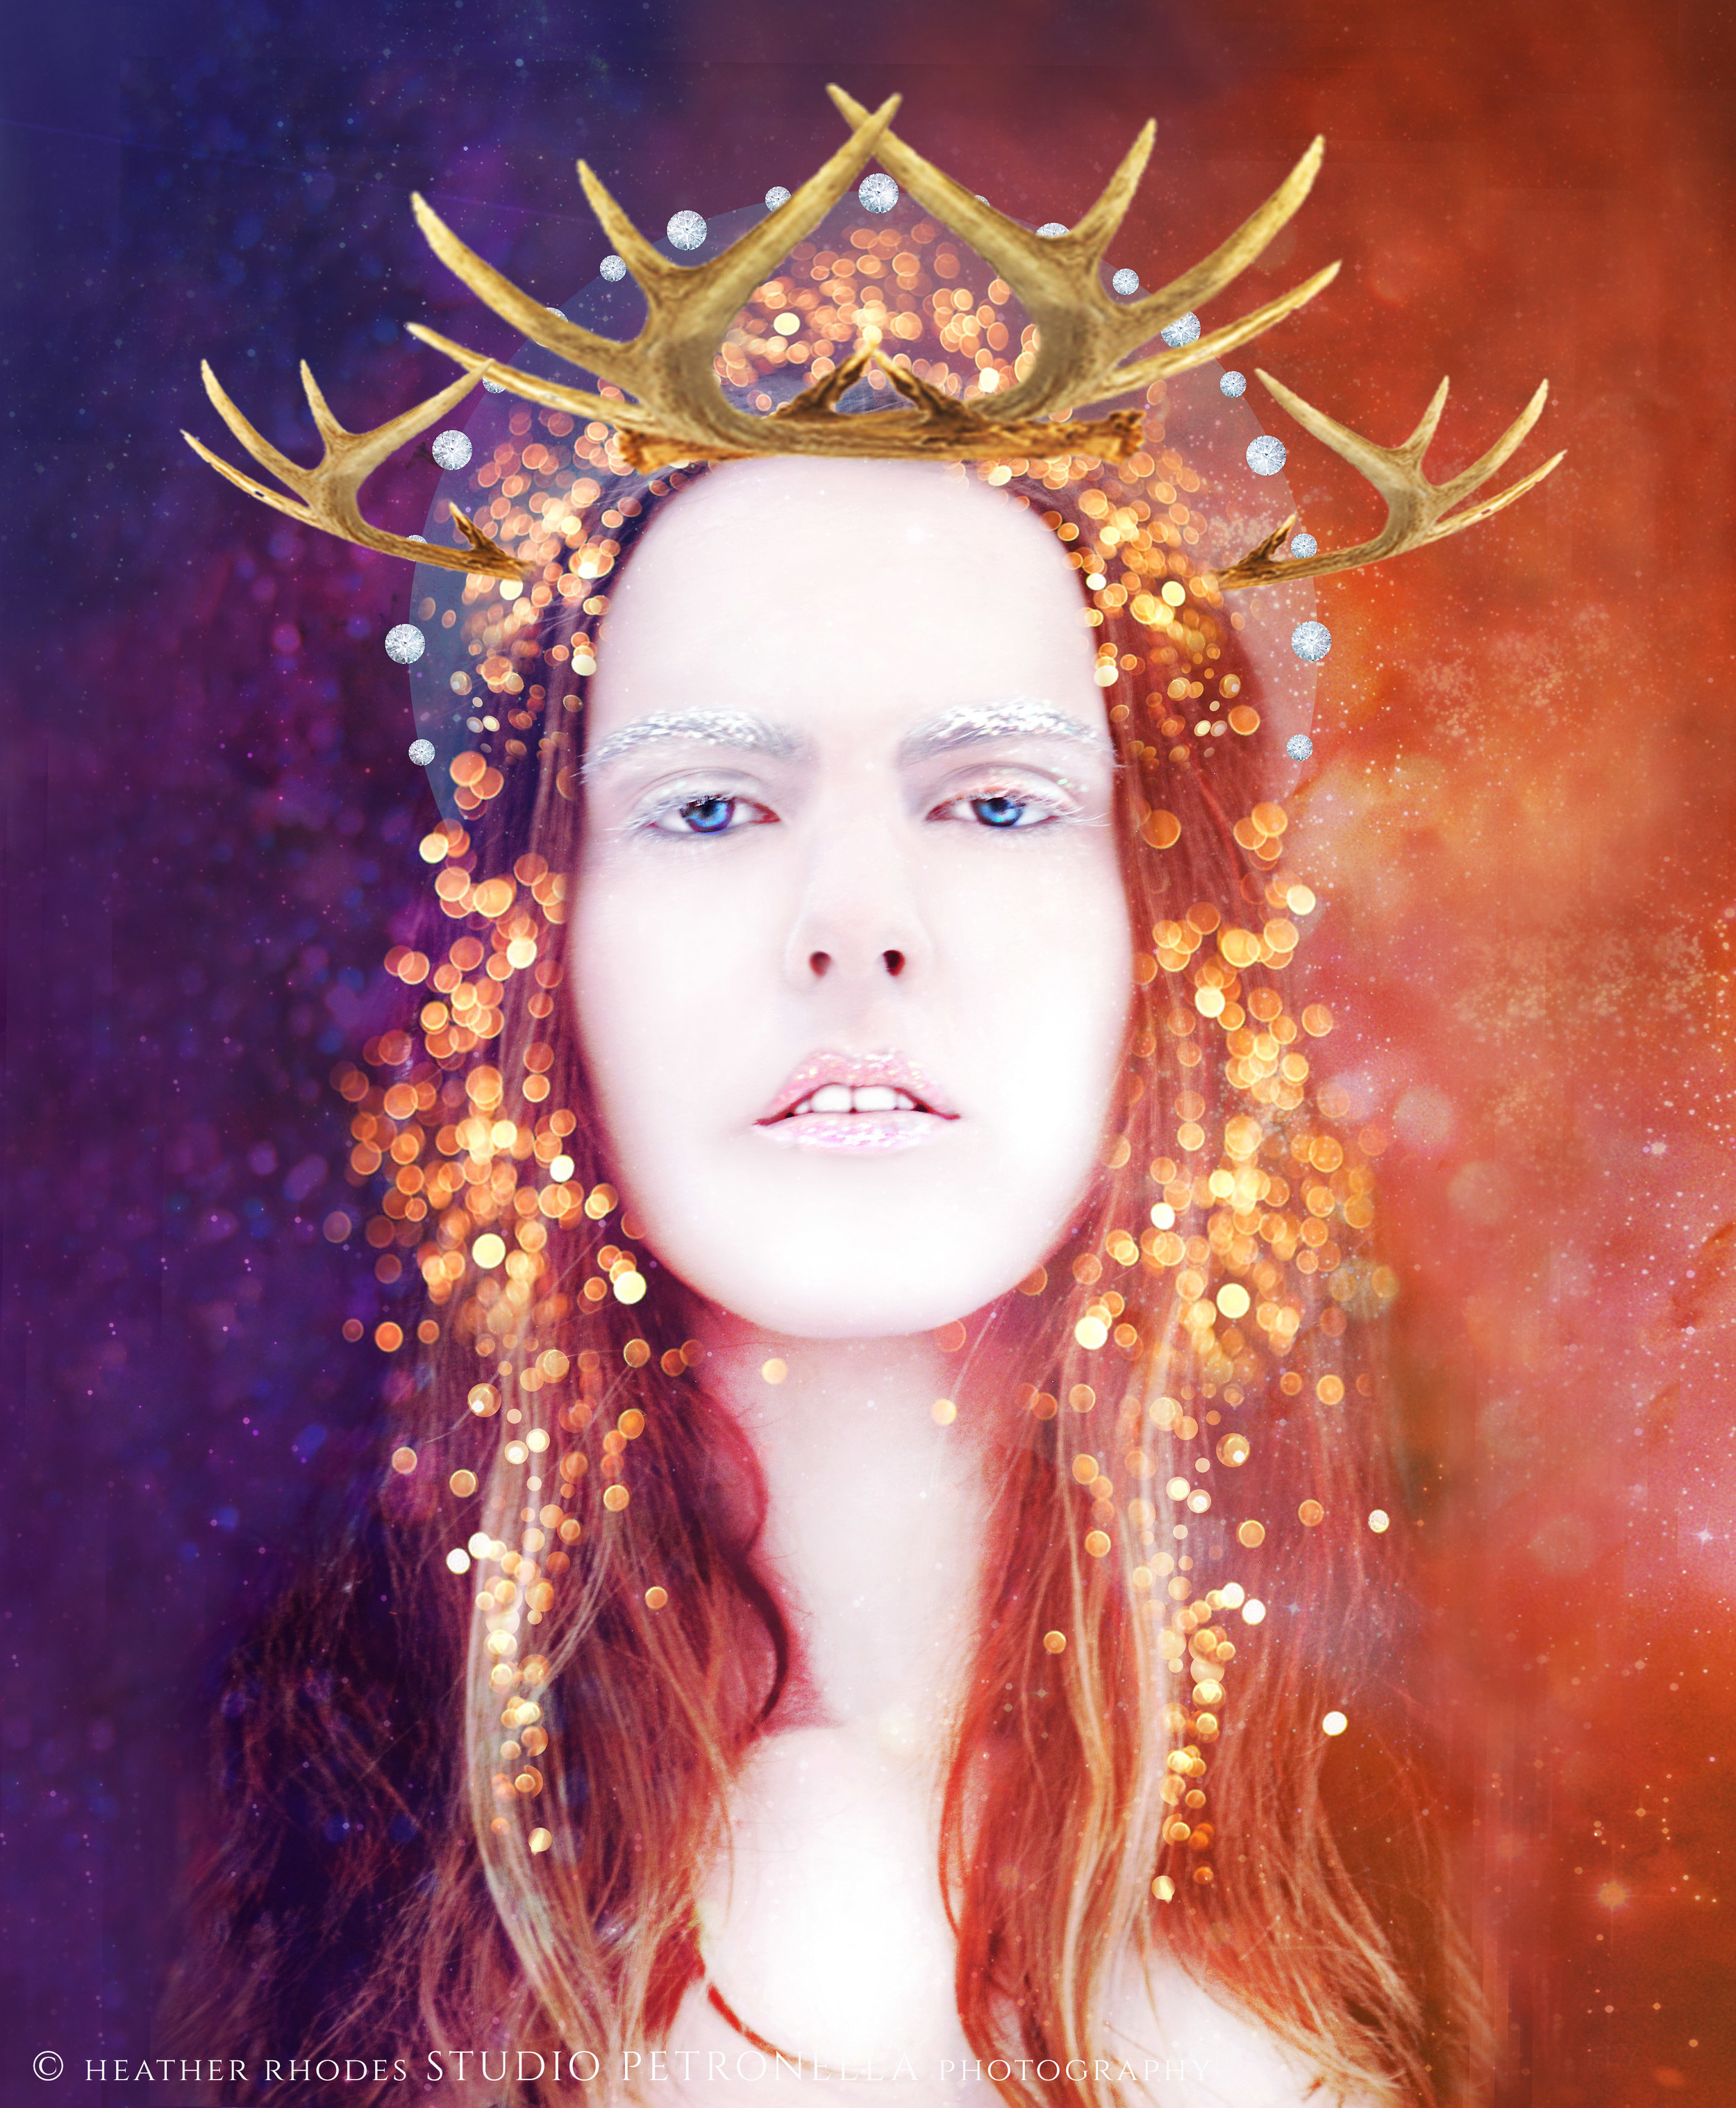 jane cosmic princess 1 © heather rhodes studio petronella all rights reserved.jpg